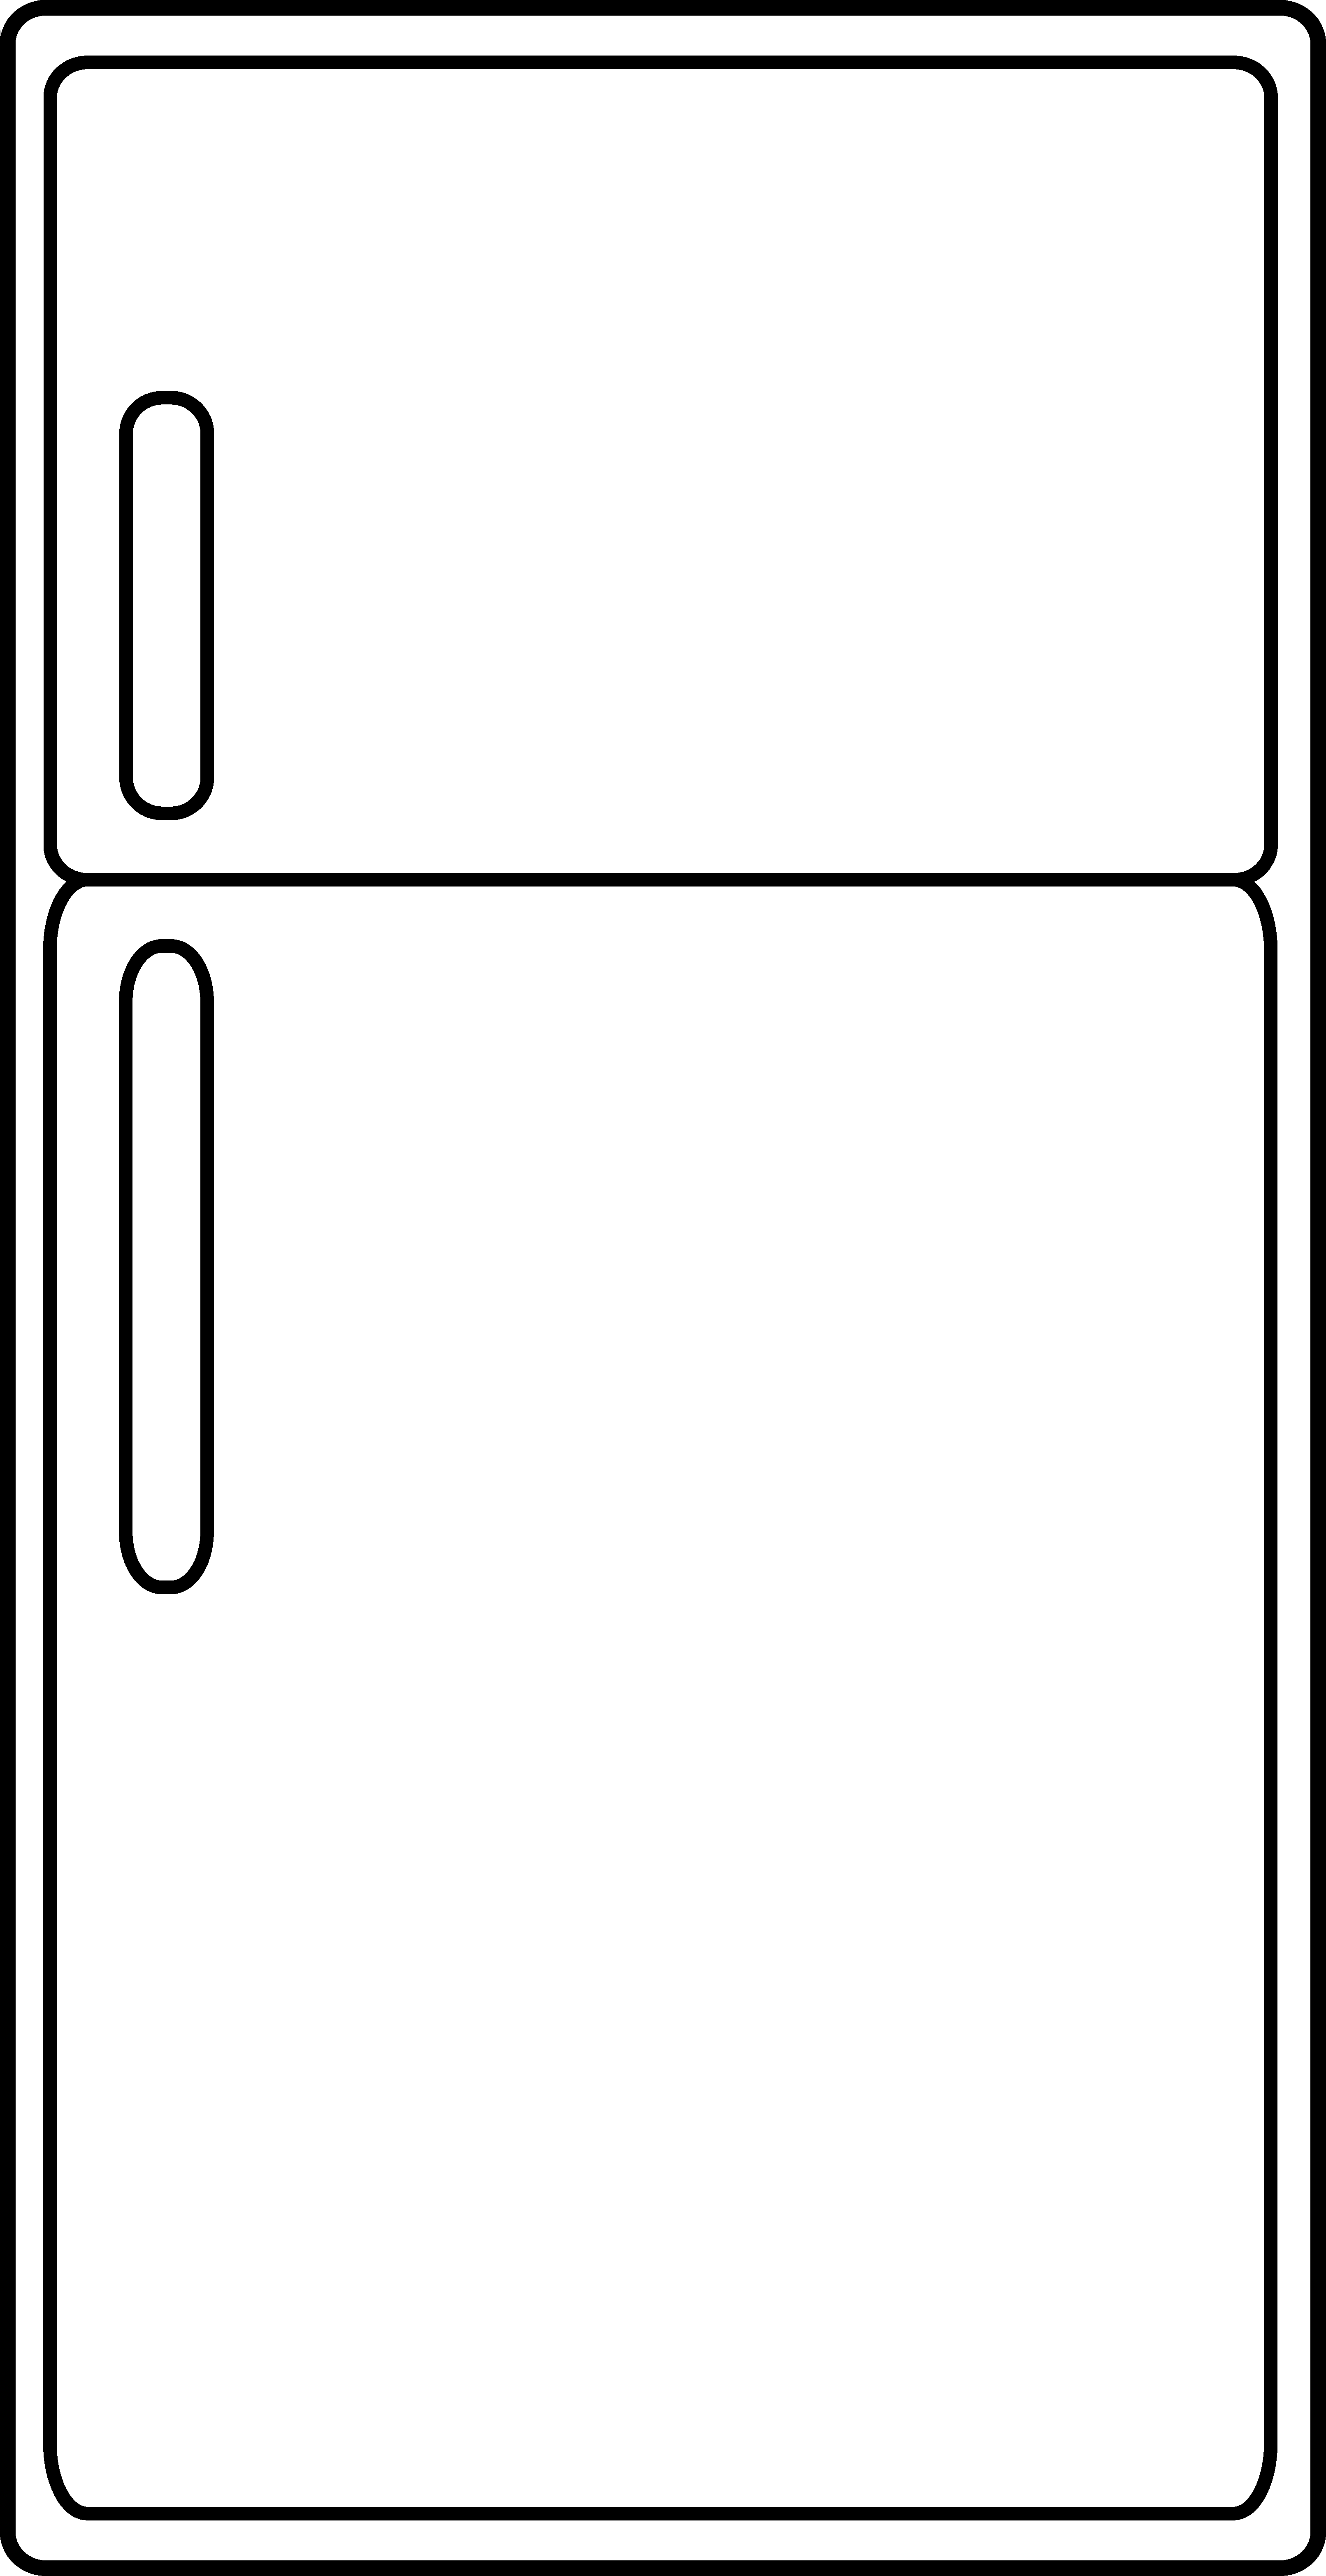 Fridge Colouring Page - ClipArt Best